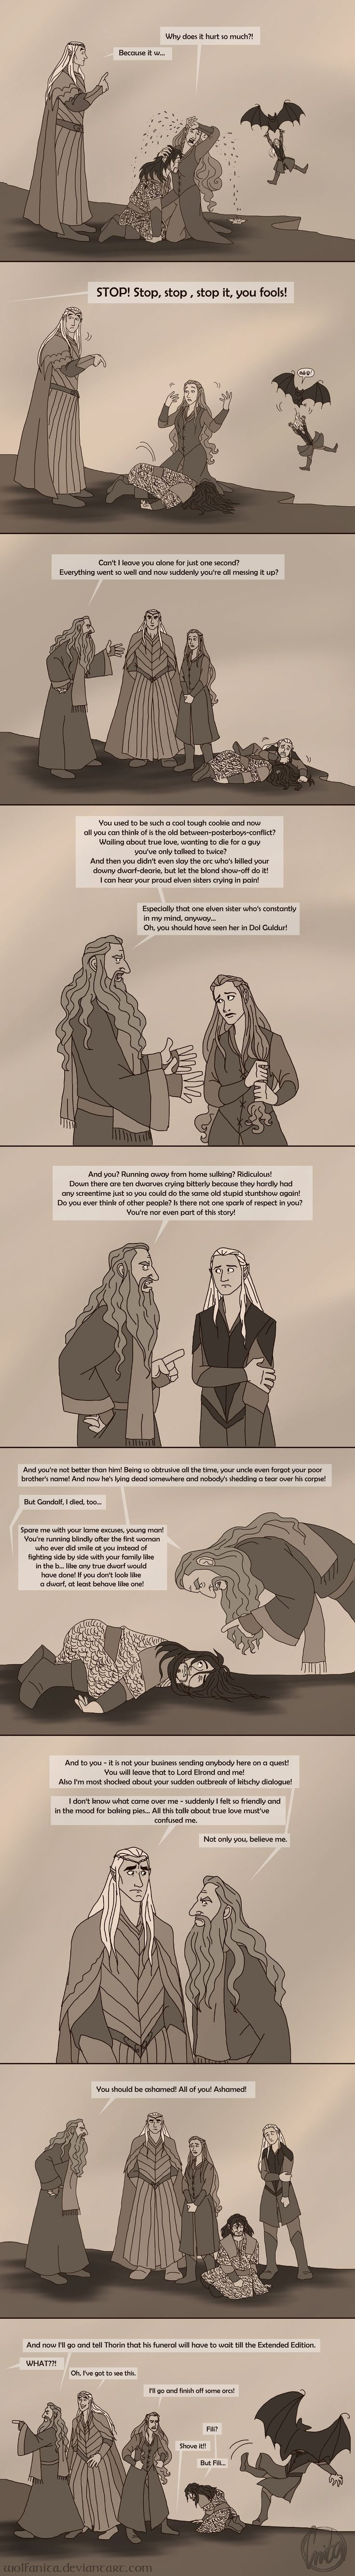 This perfectly sums up my feelings about Battle of the Five Armies. The Hobbit: Gandalf to the Rescue! by wolfanita on DeviantArt